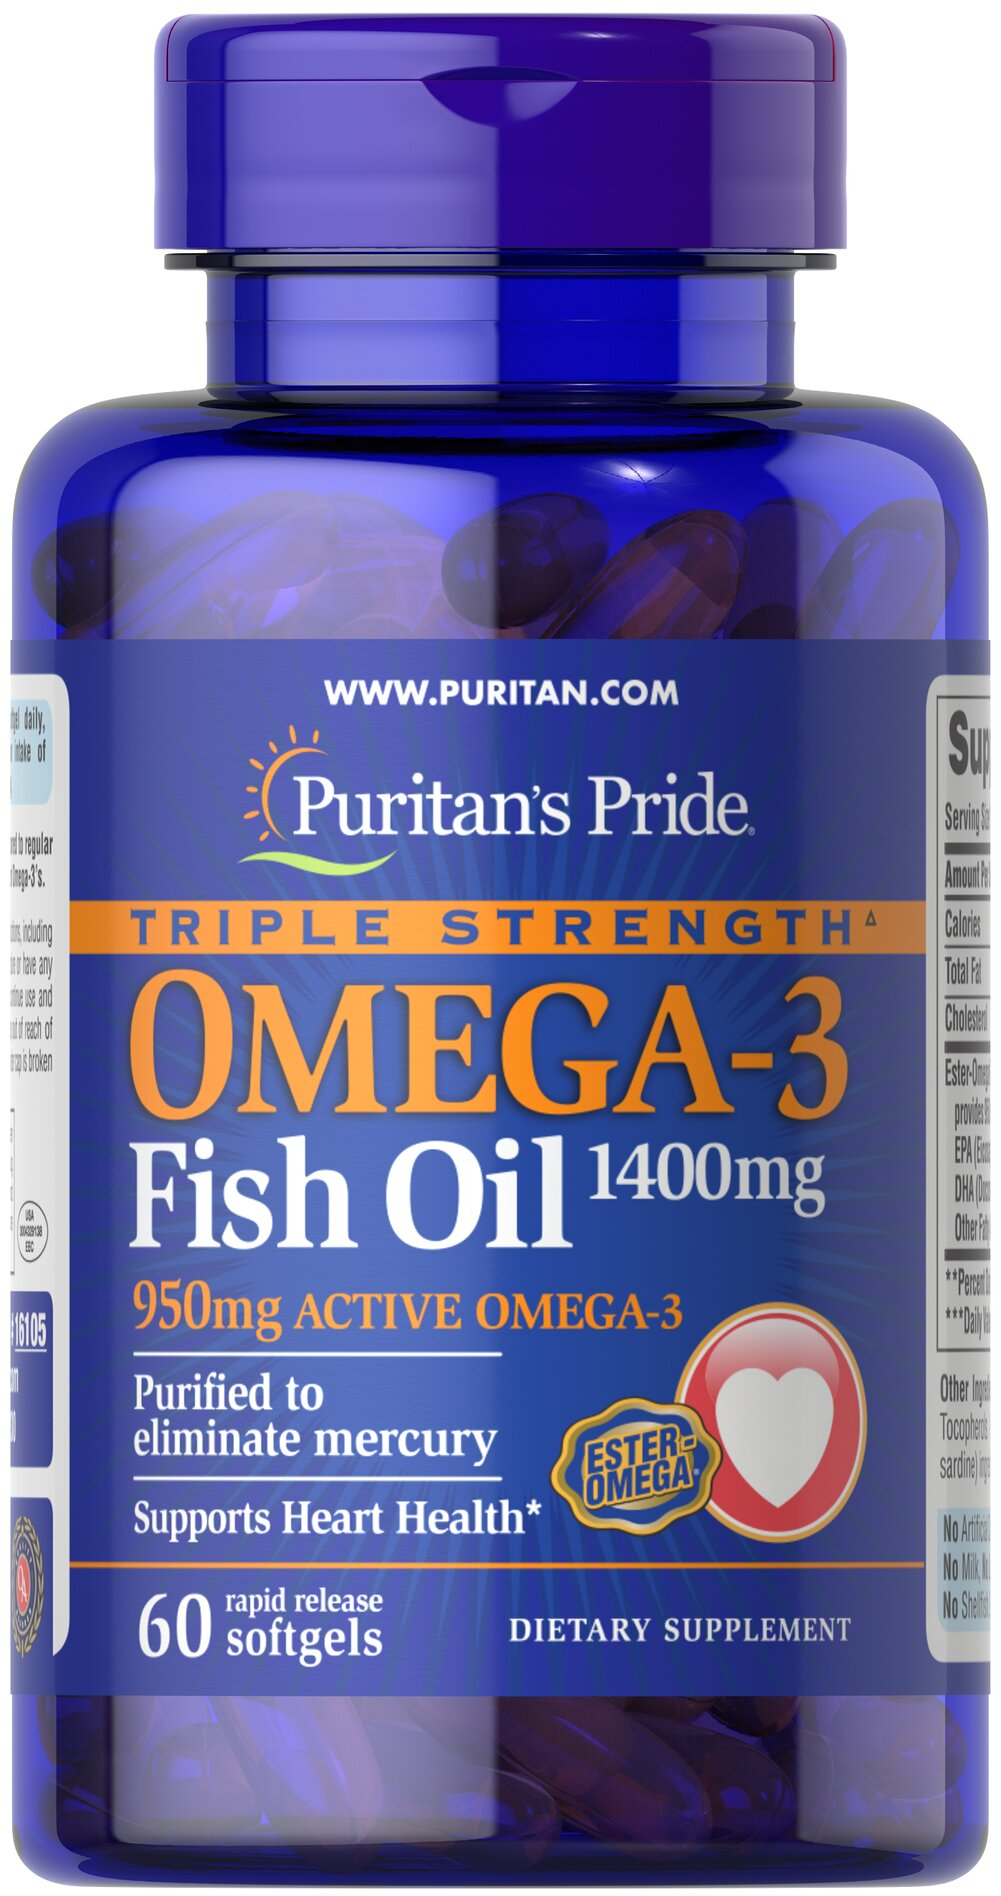 Triple Strength Omega-3 Fish Oil 1360 mg <p><strong>Purified to Eliminate Mercury</strong></p><p>Contains 950 mg of active Omega-3 per softgel — our highest potency! </p> 60 Softgels 1360 mg $20.99